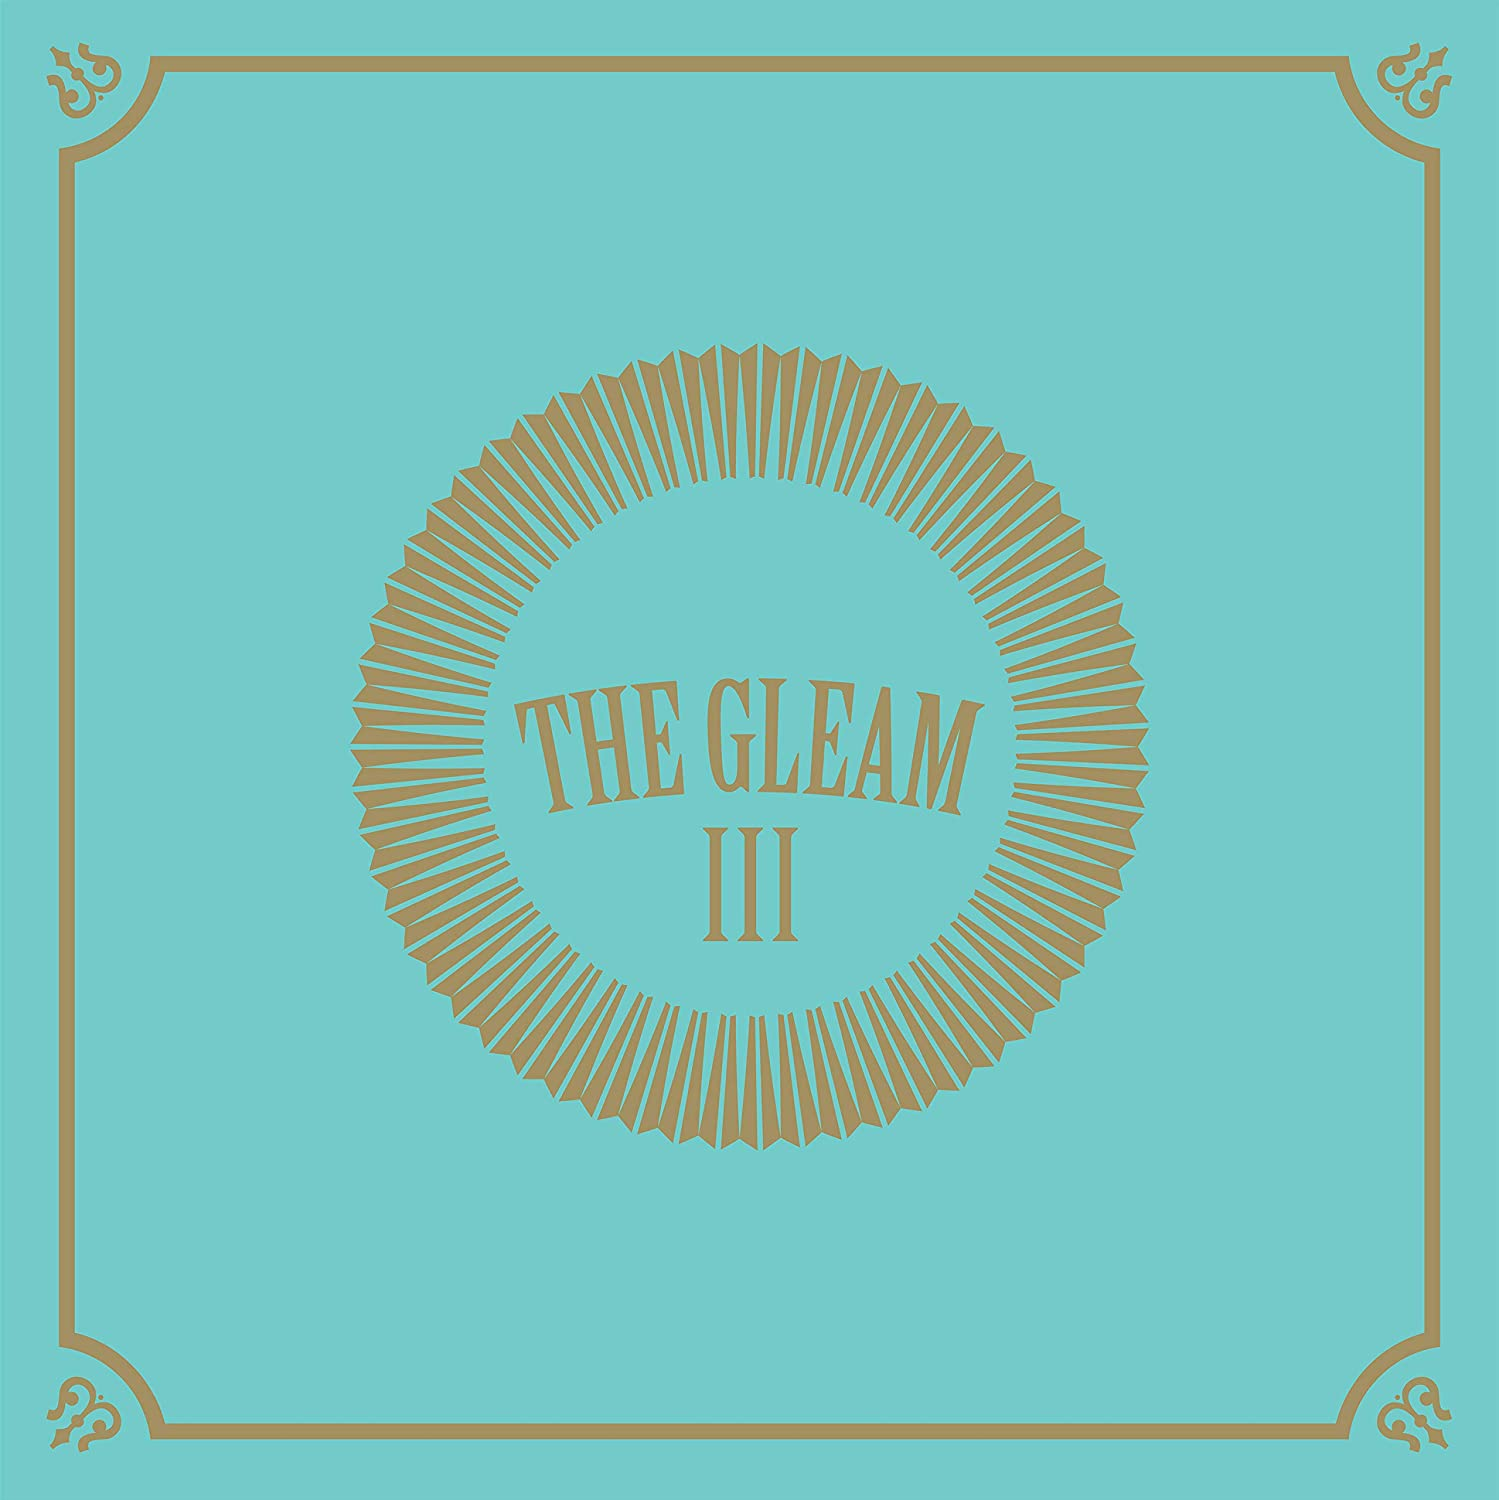 The Avett Brothers - The Third Gleam [Indie Exclusive Limited Edition CD+Patch]